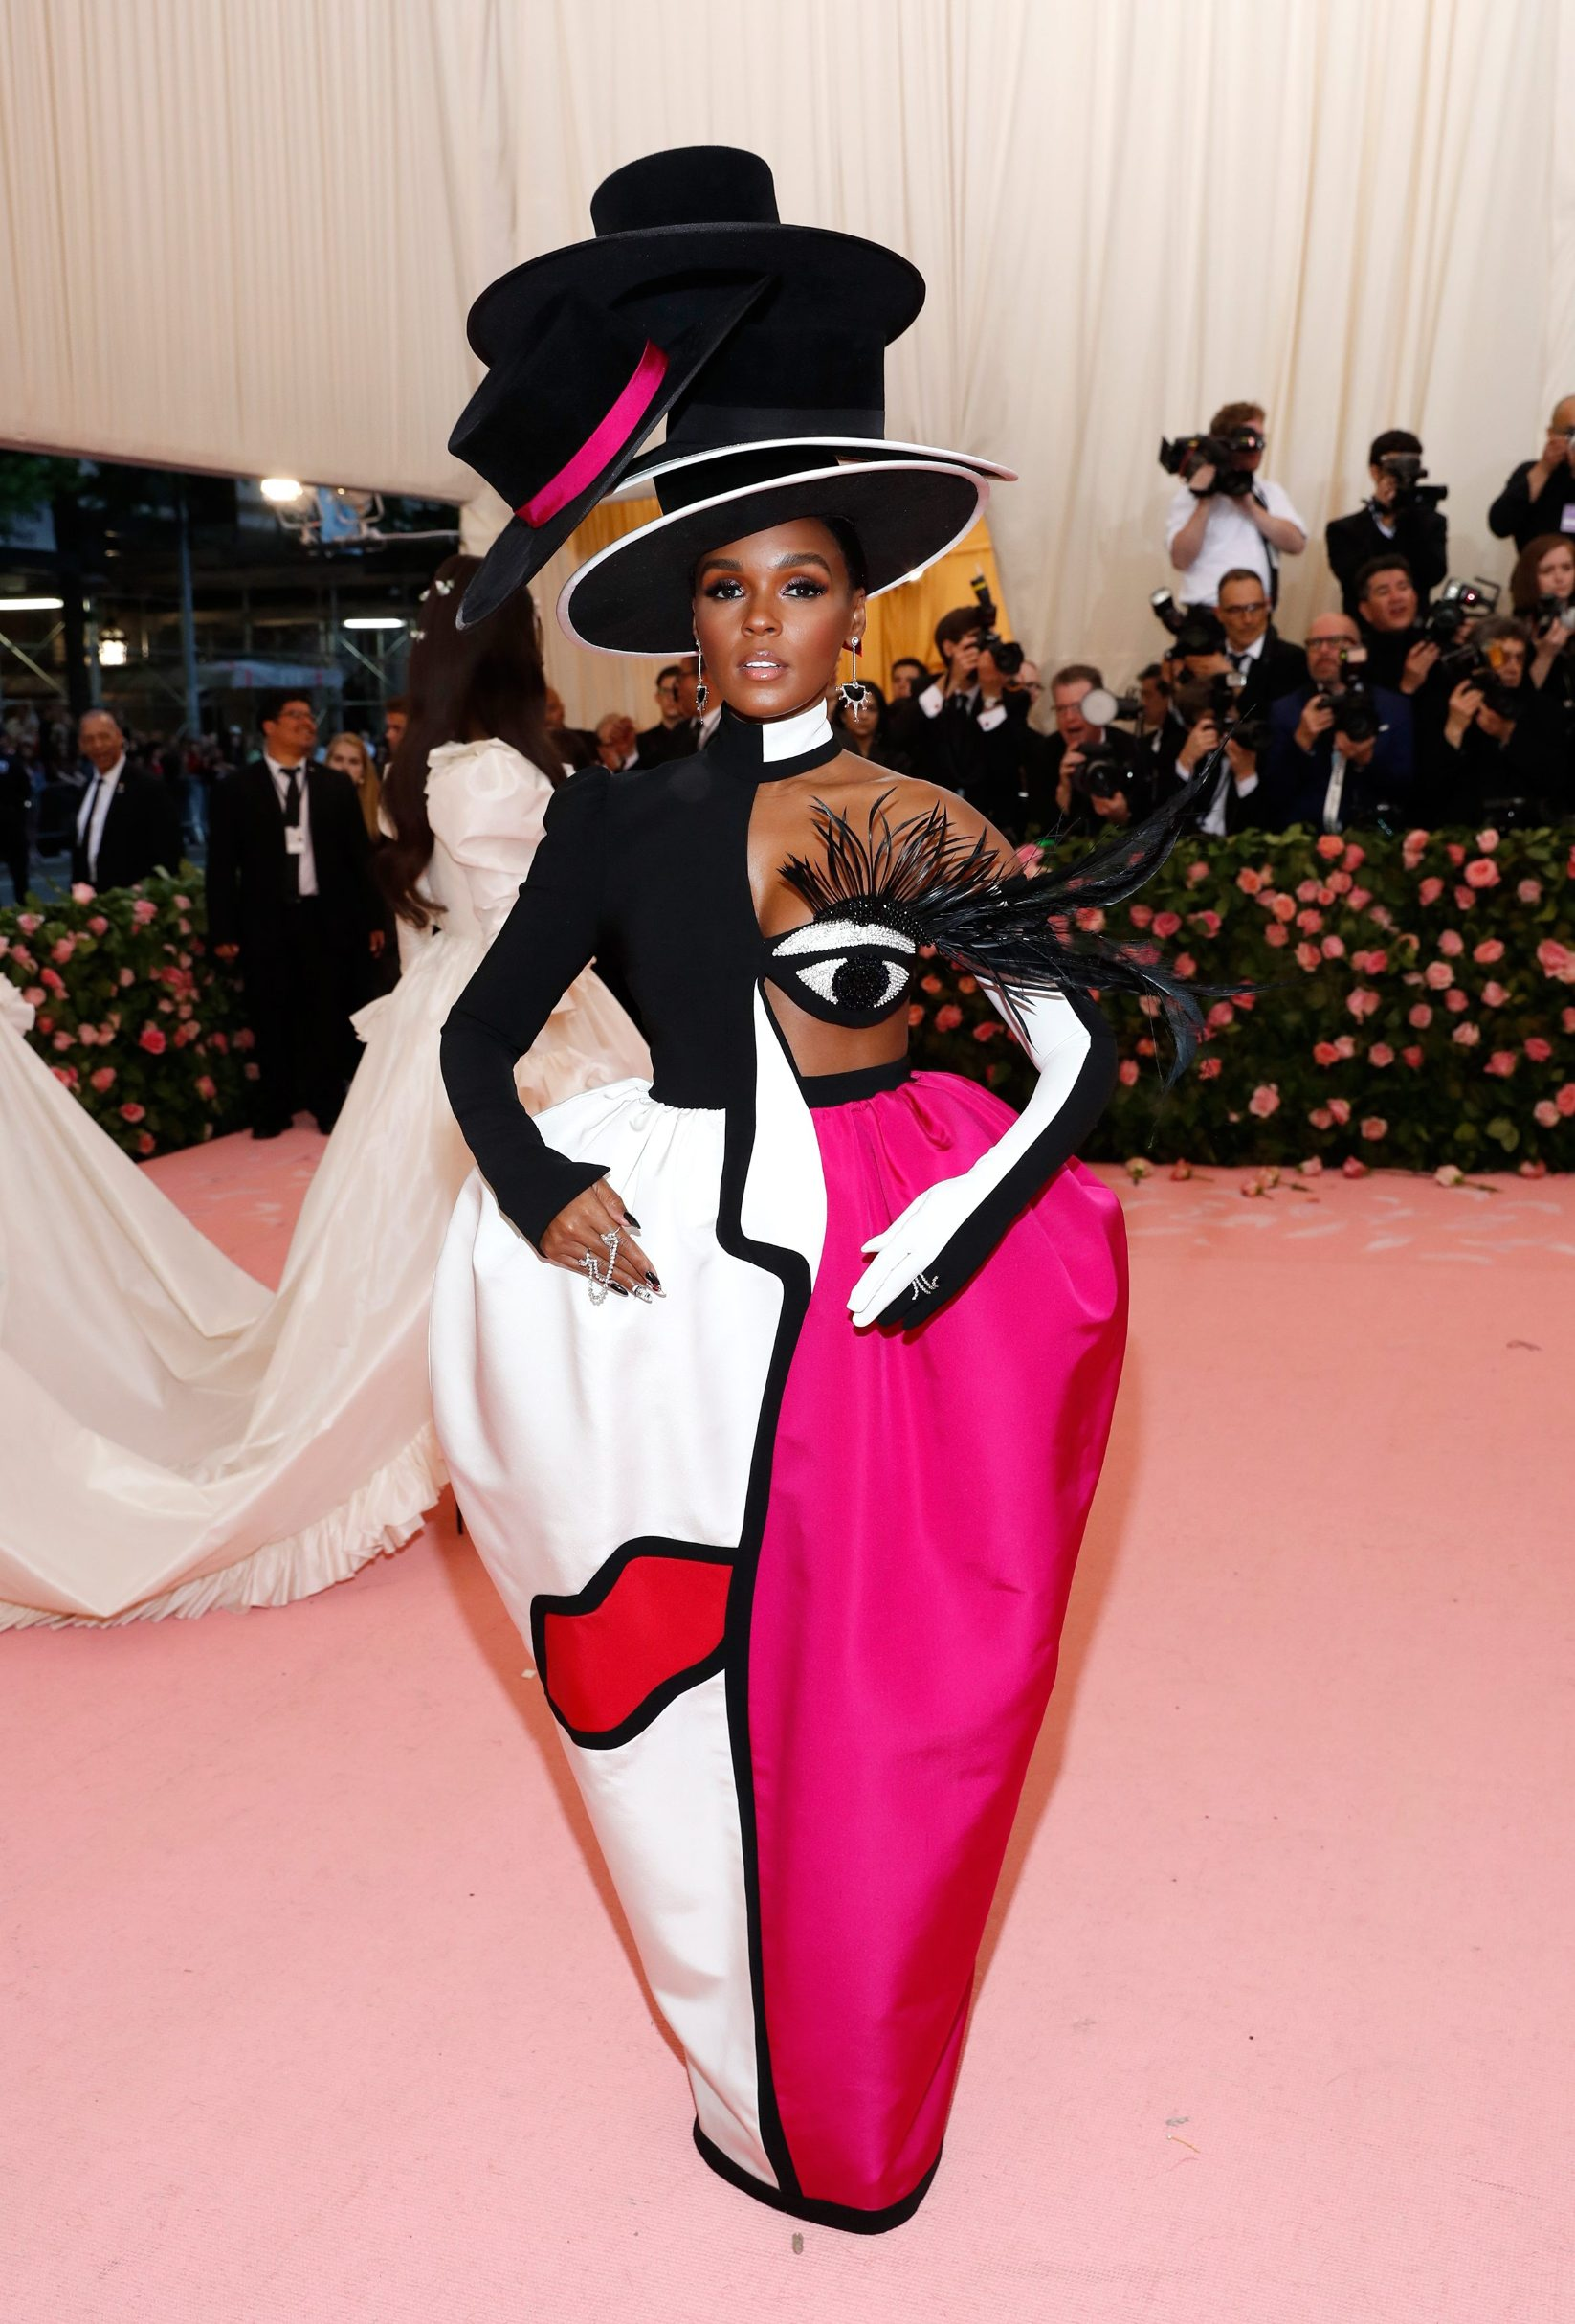 Metropolitan Museum of Art Costume Institute Gala - Met Gala - Camp: Notes on Fashion- Arrivals - New York City, U.S. Äi May 6, 2019 - Janelle Monae. REUTERS/Andrew Kelly